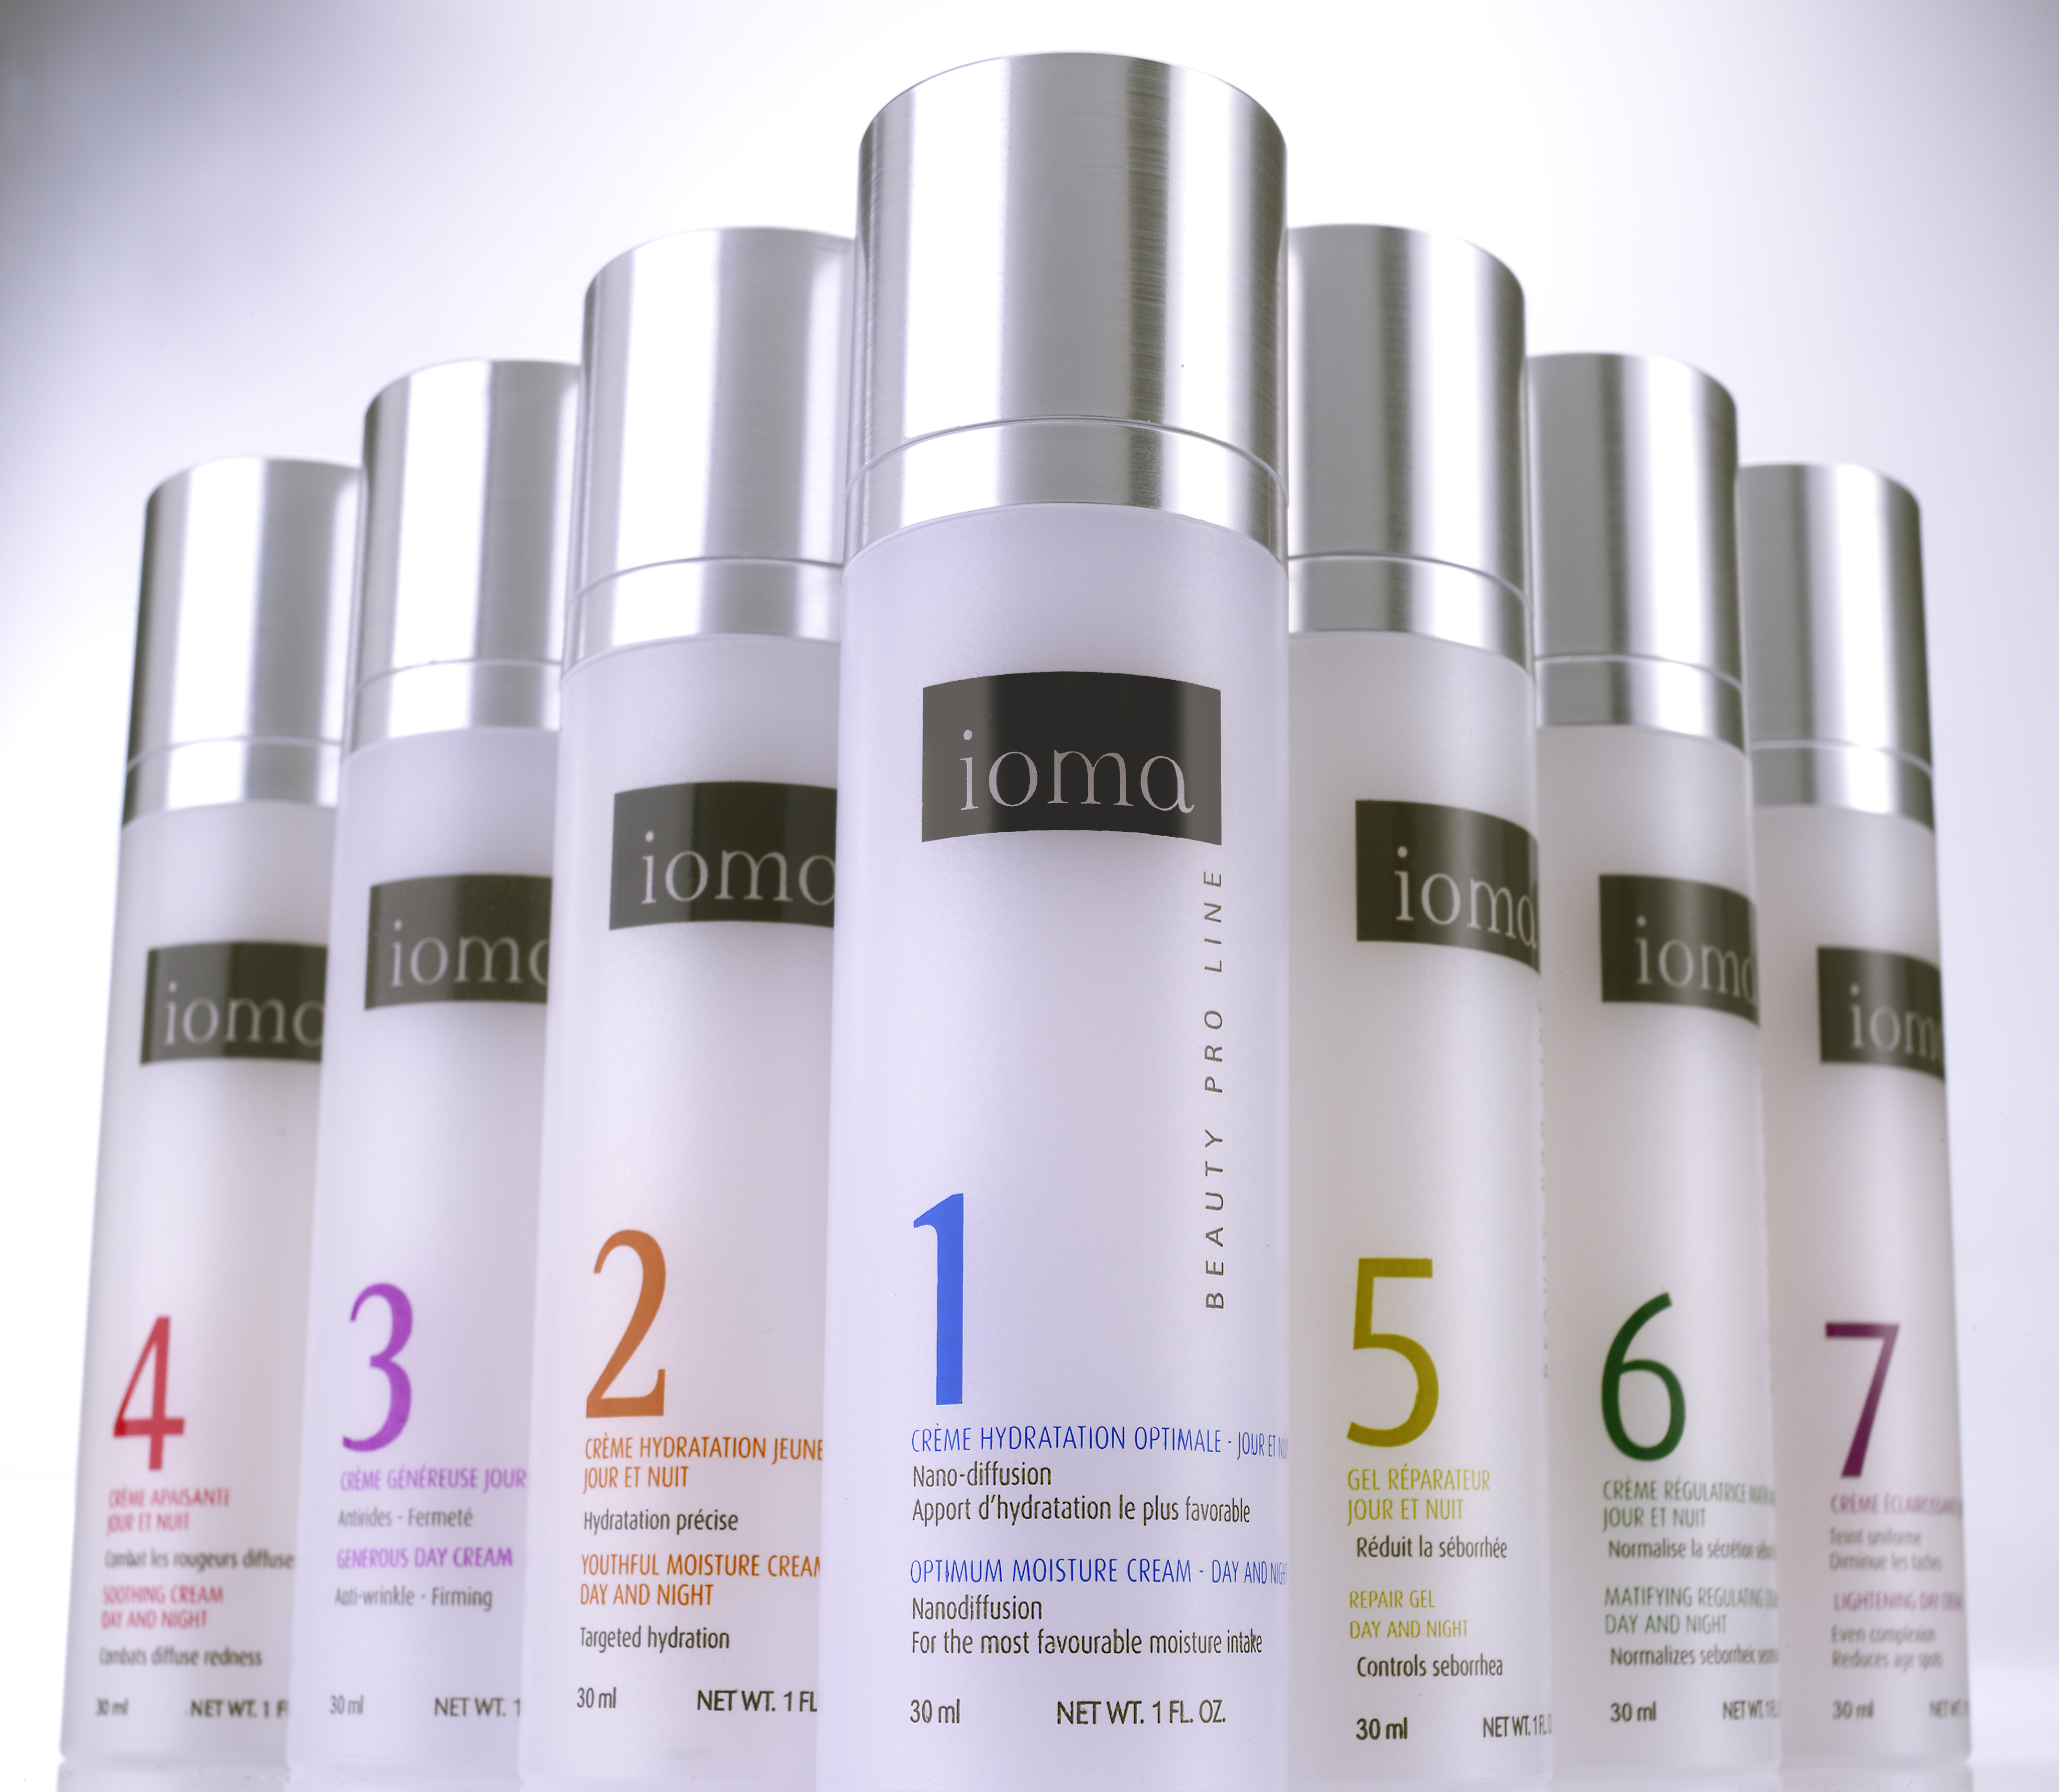 Customized Skincare that Corrects Individual Imperfections – IOMA Paris